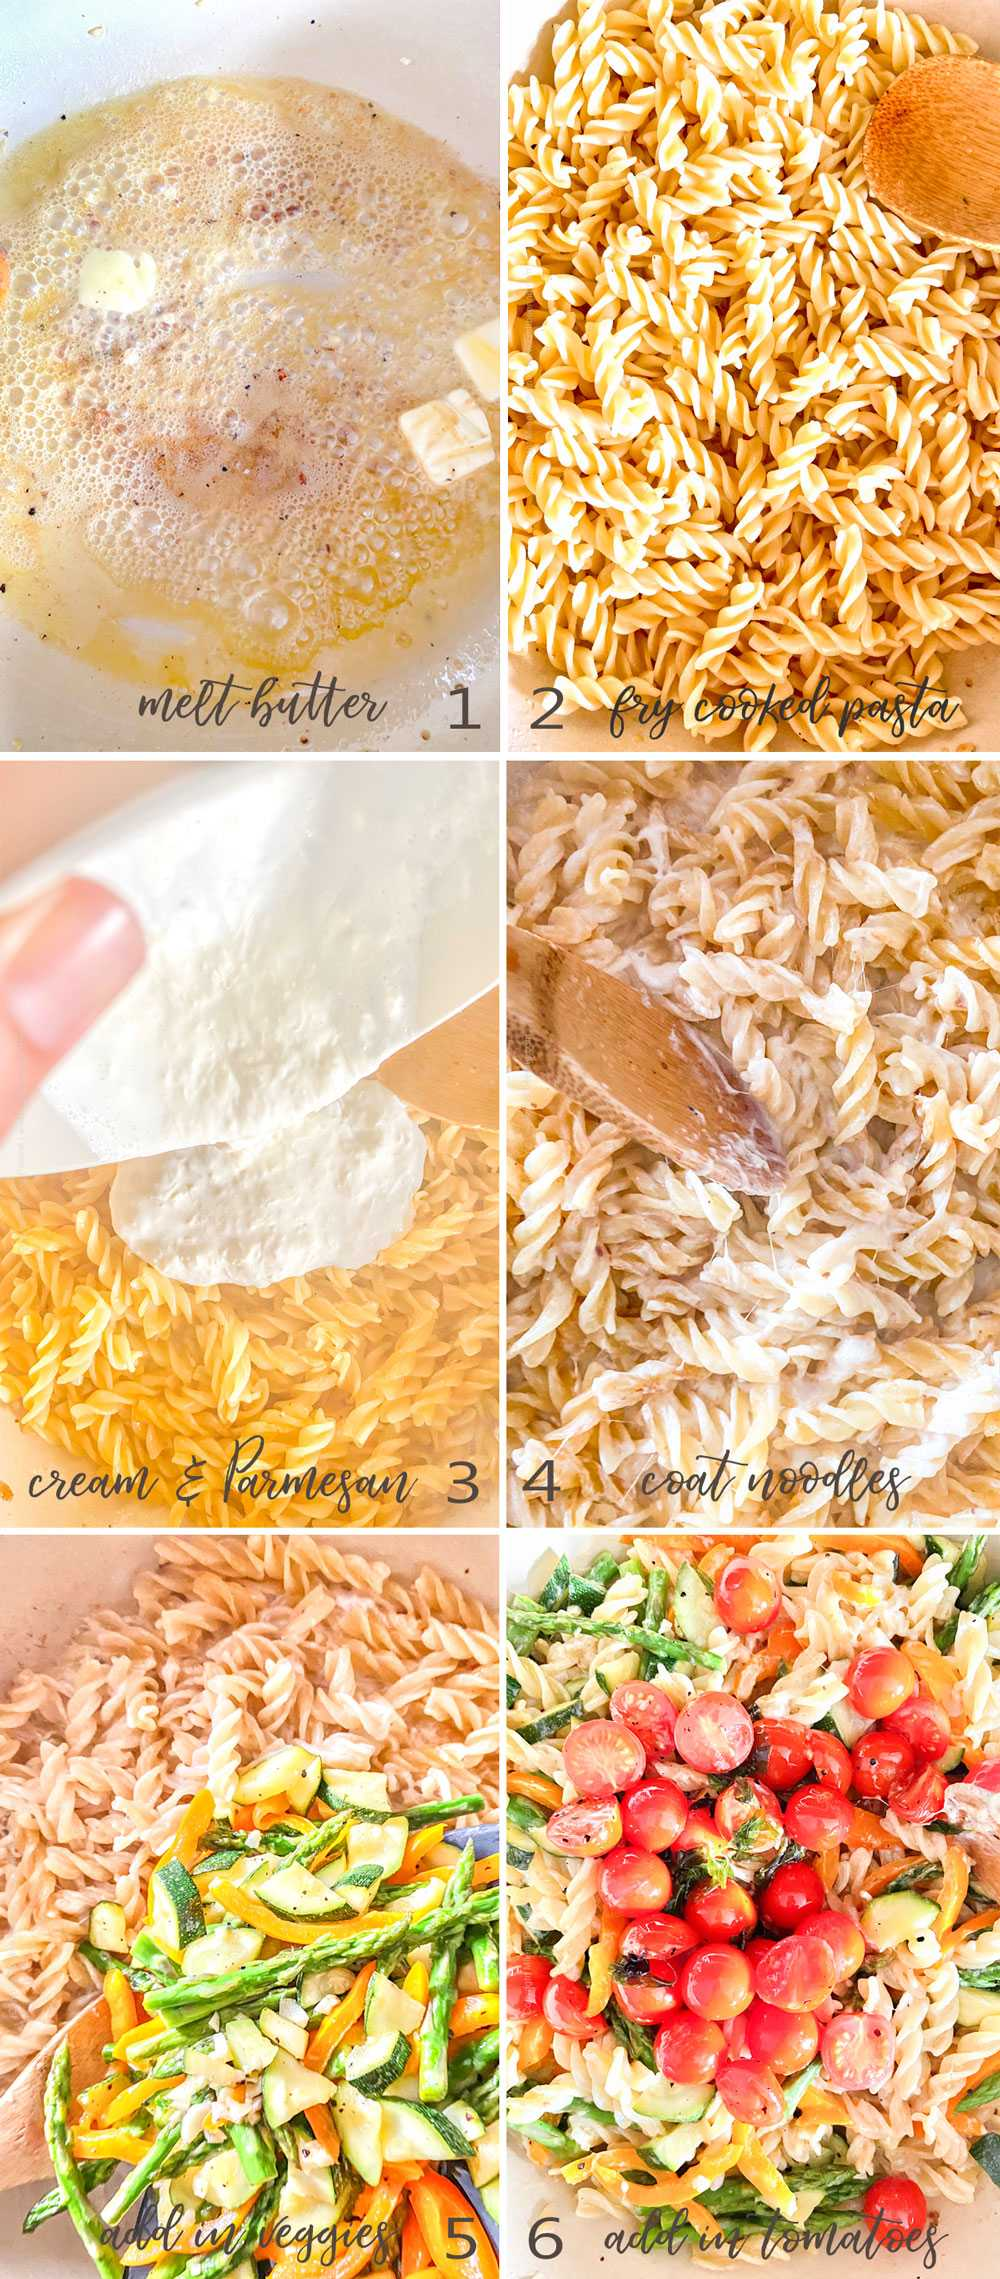 How to pan fry al dente noodles for Pasta Primavera and then assemble the dish - step by step image collage.